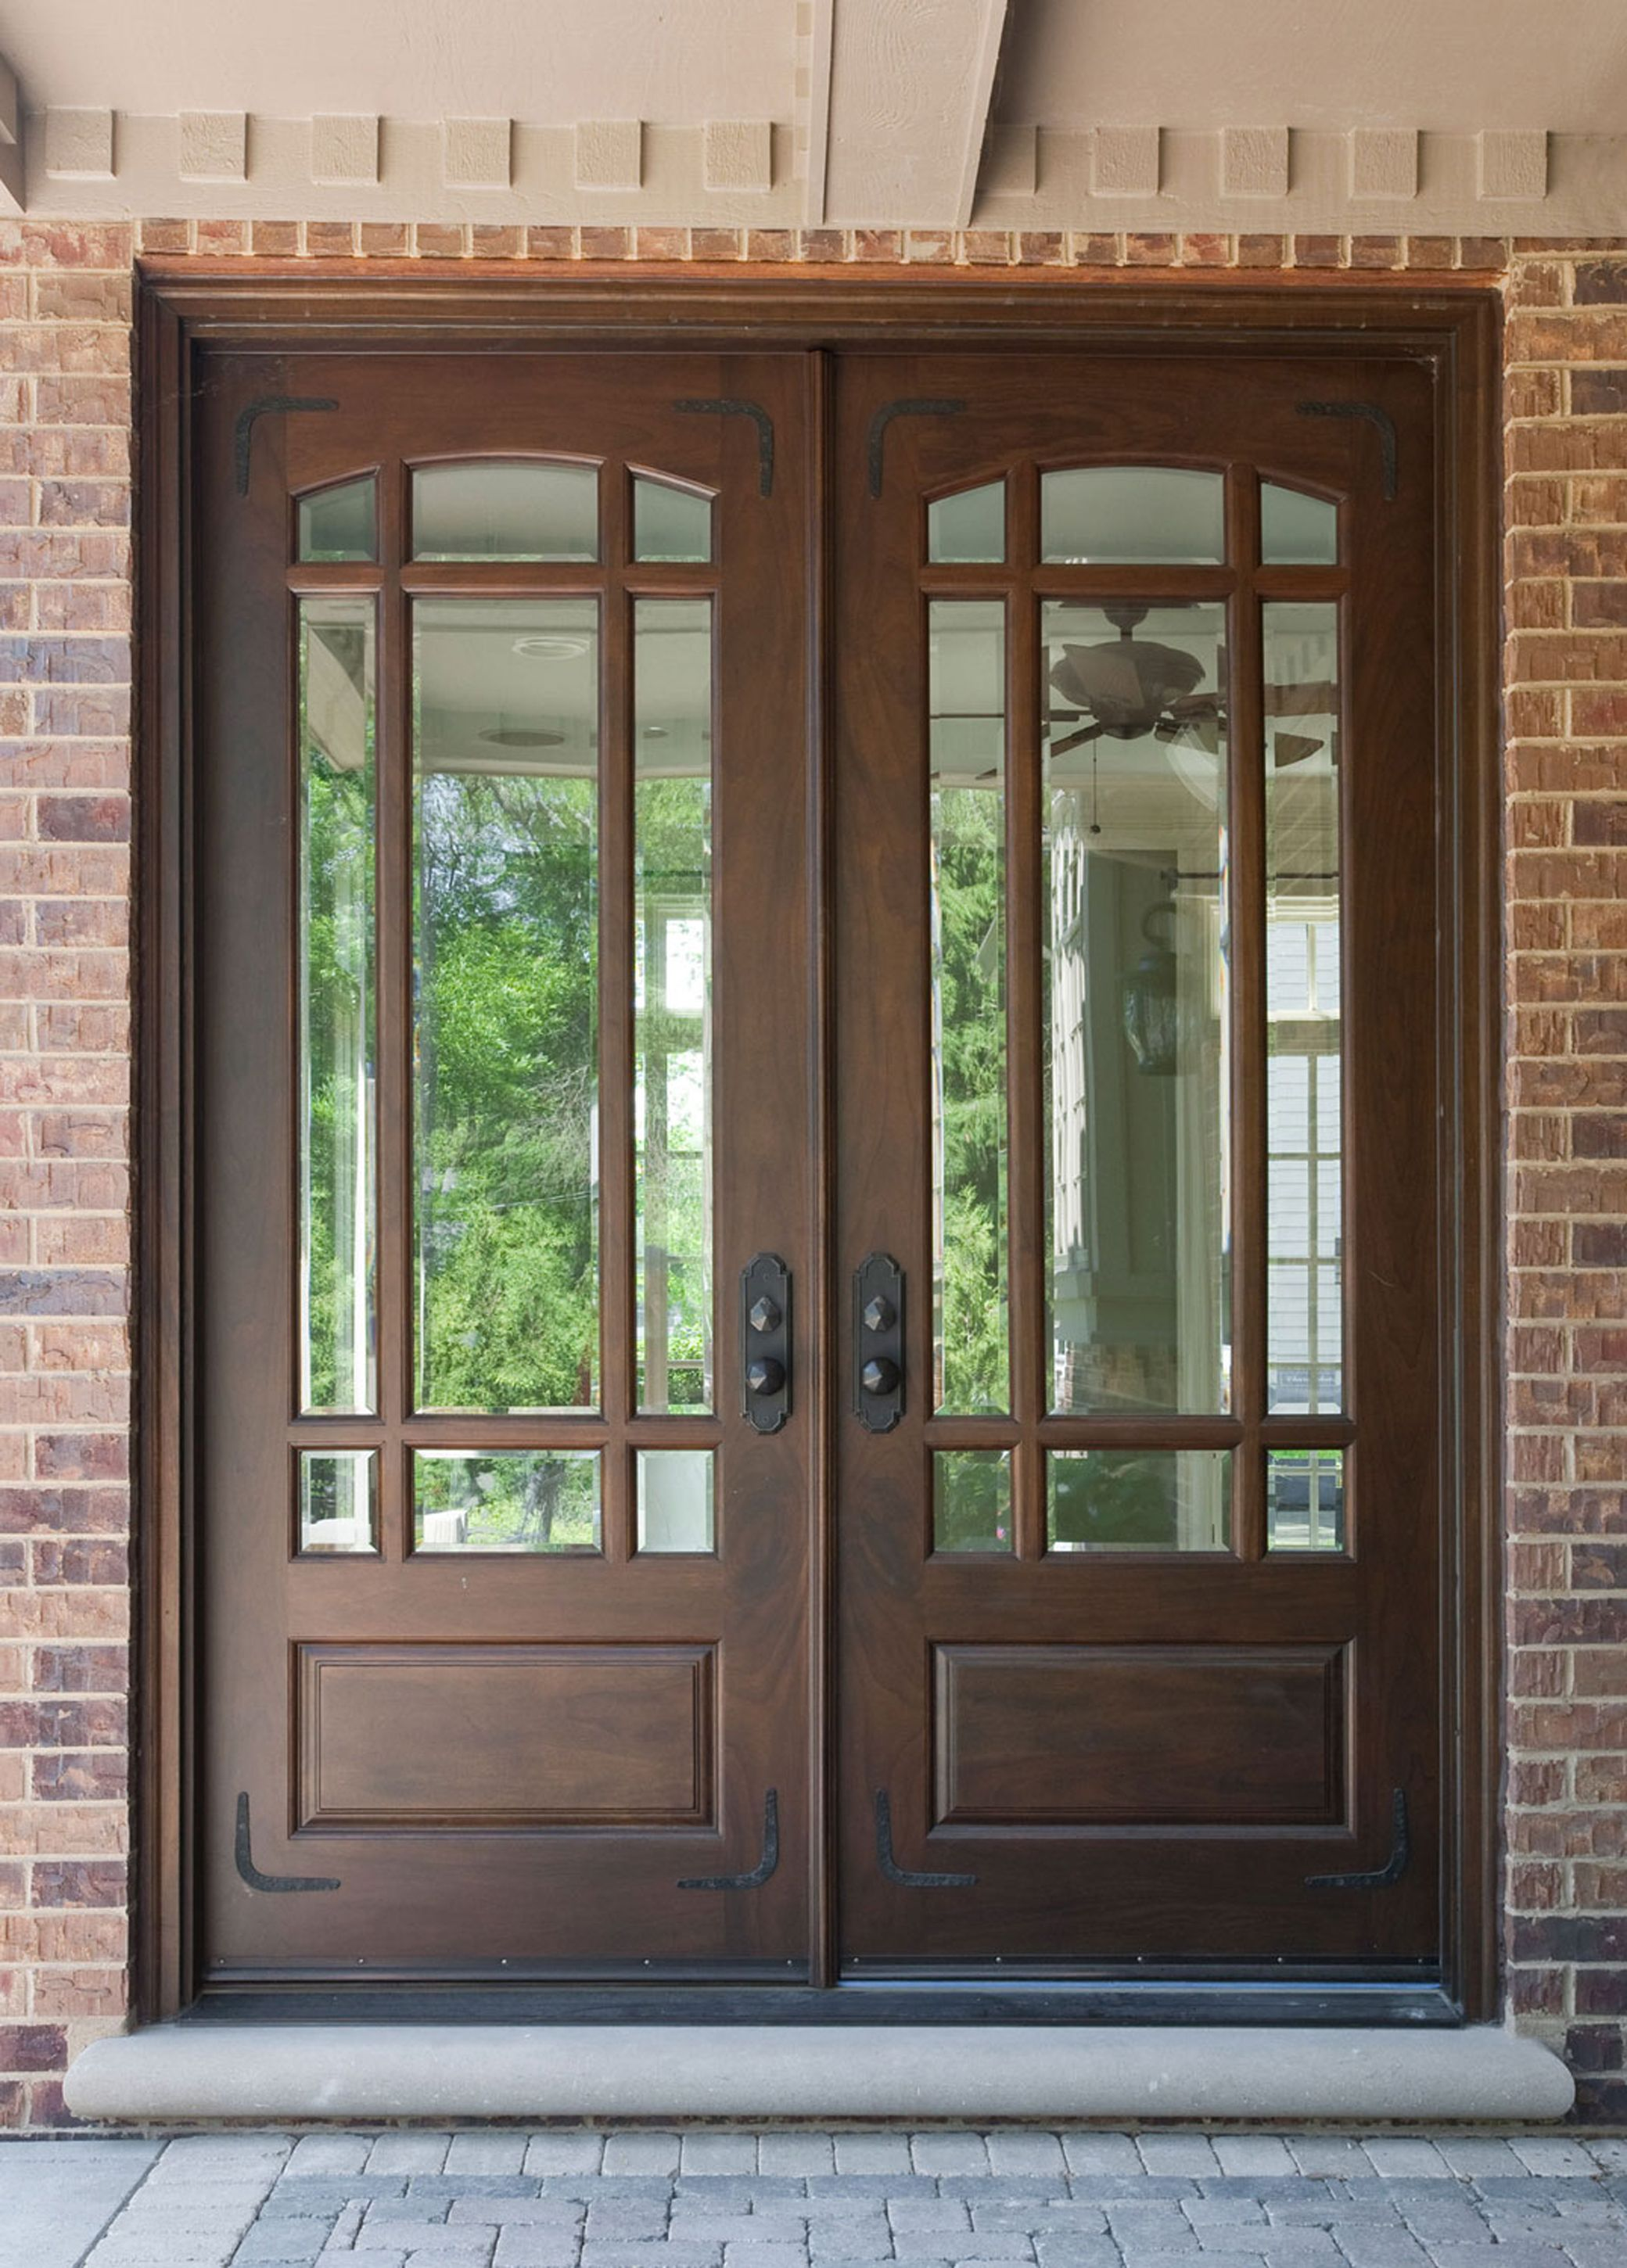 Appealing wood exterior doors with glass lowes for wood doors appealing wood exterior doors with glass lowes for wood doors planetlyrics Images